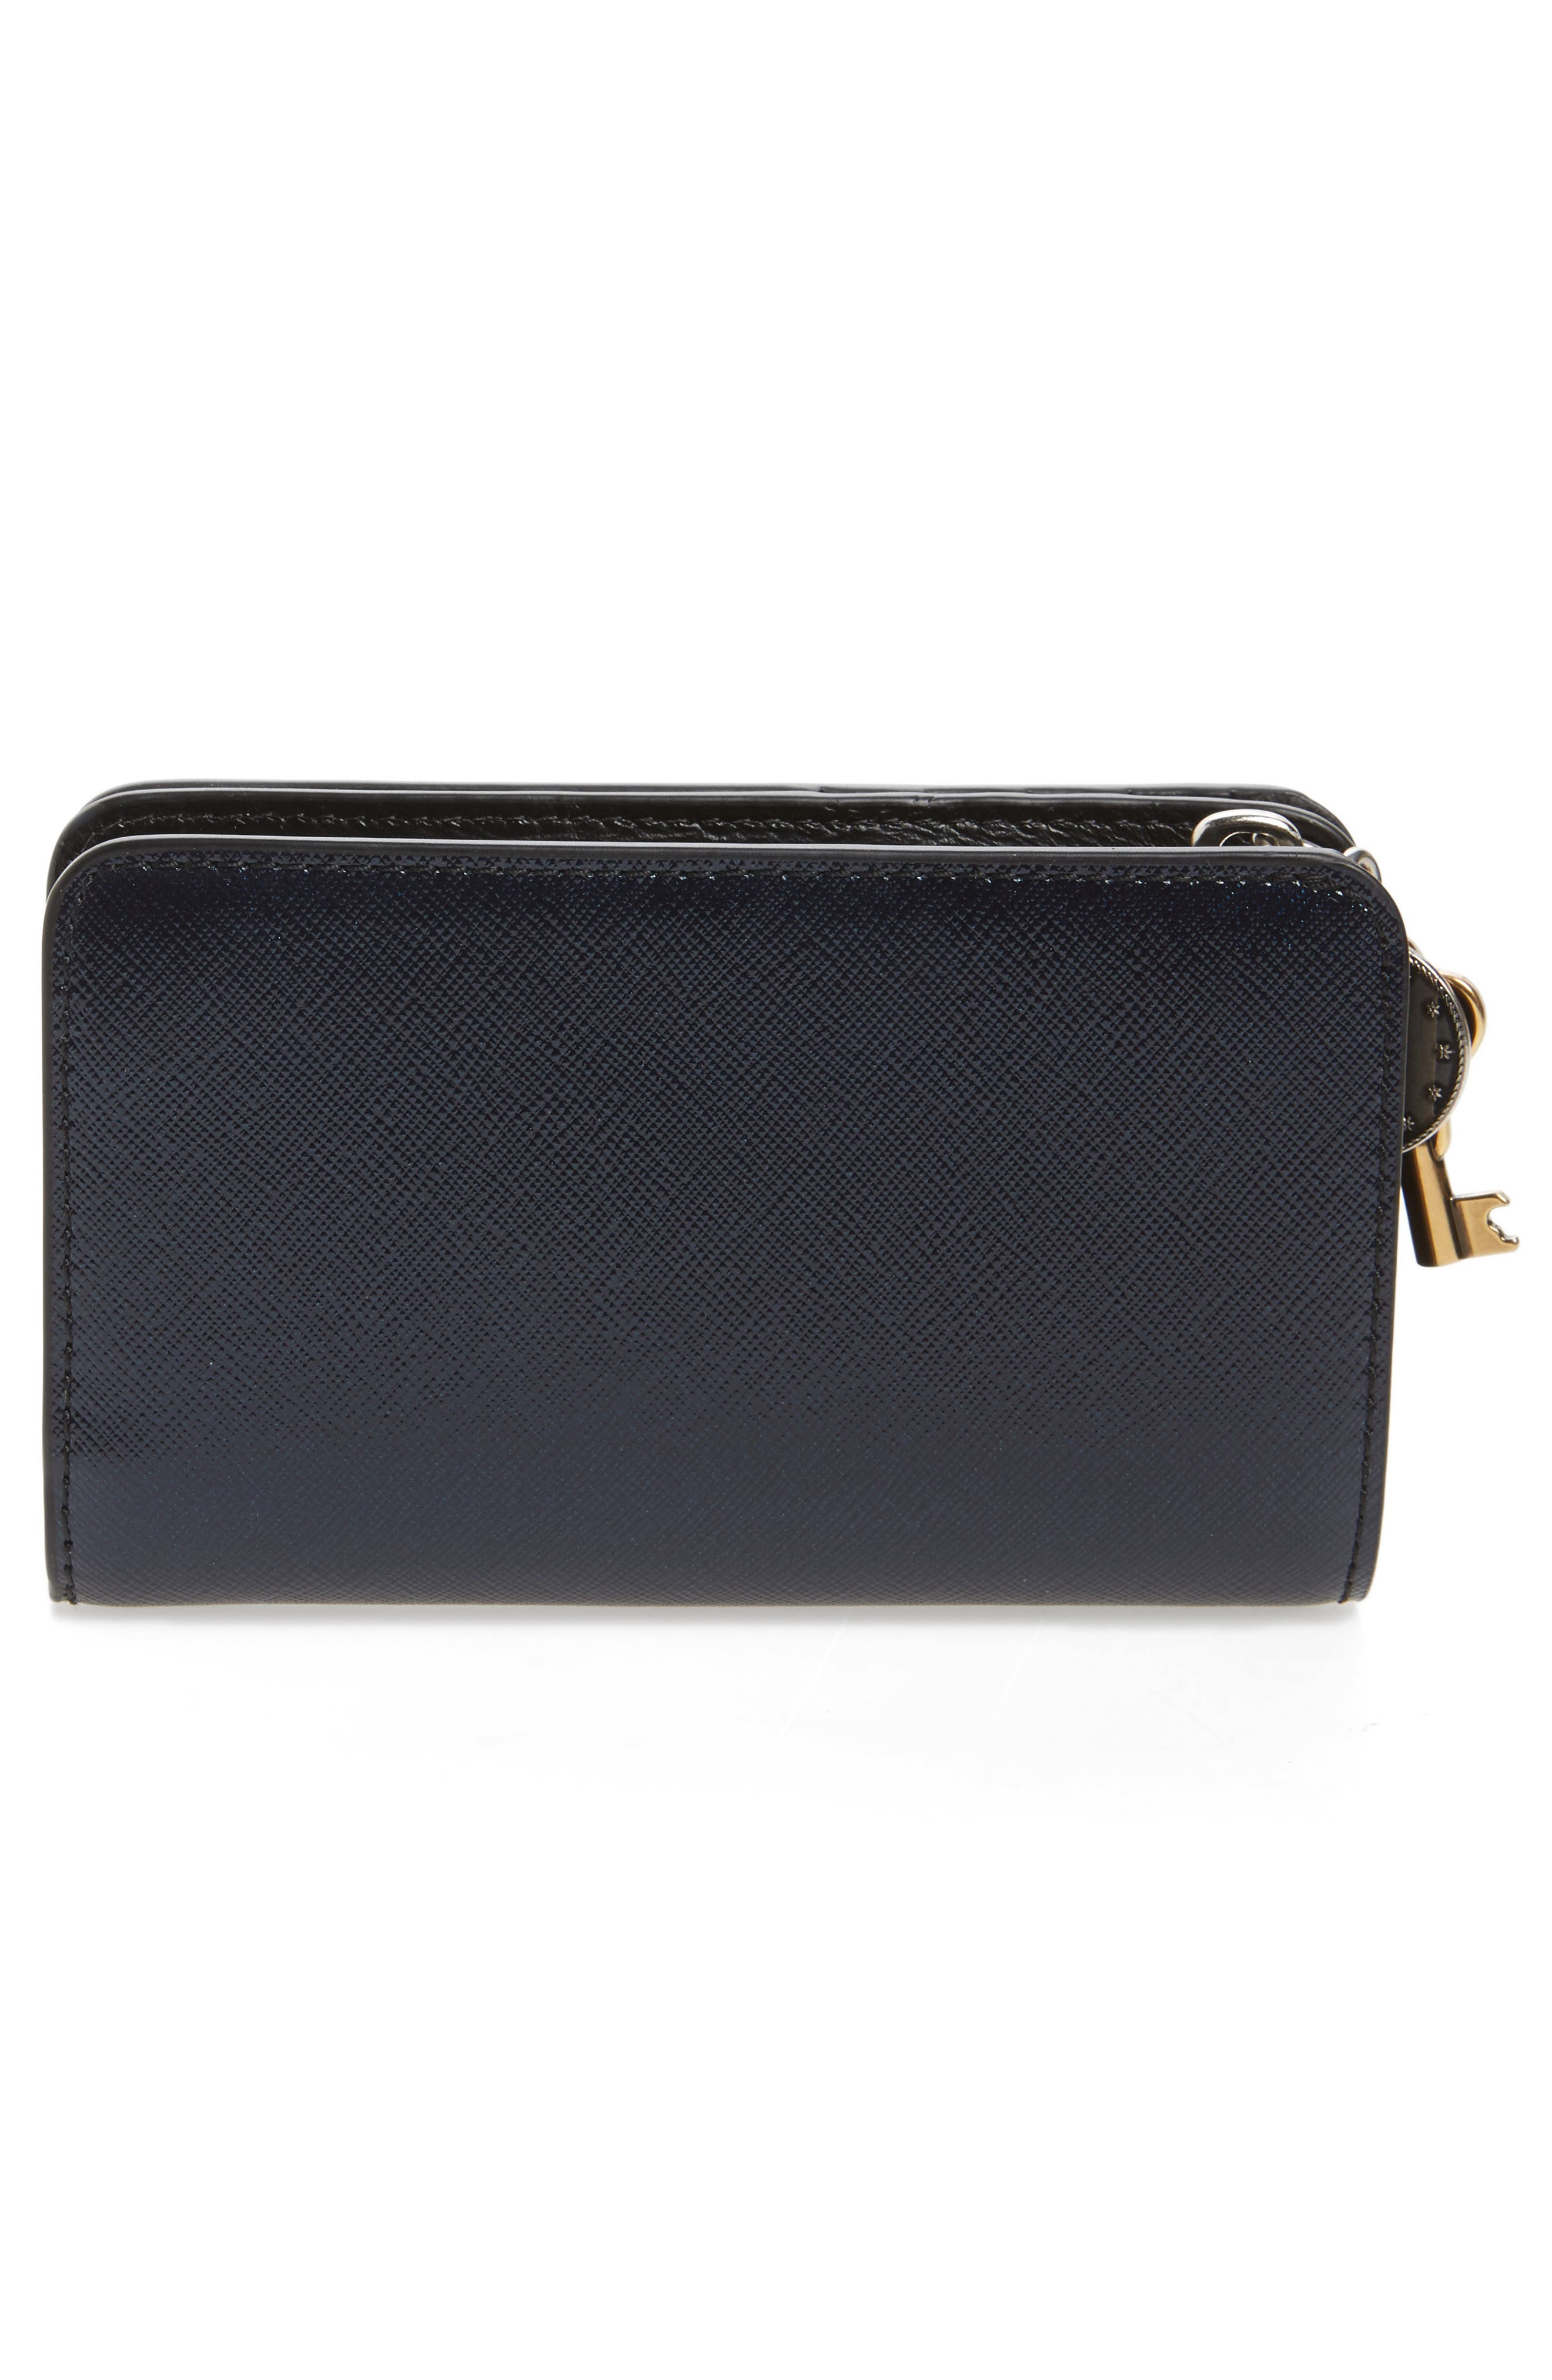 Saffiano Leather Compact Wallet,                             Alternate thumbnail 3, color,